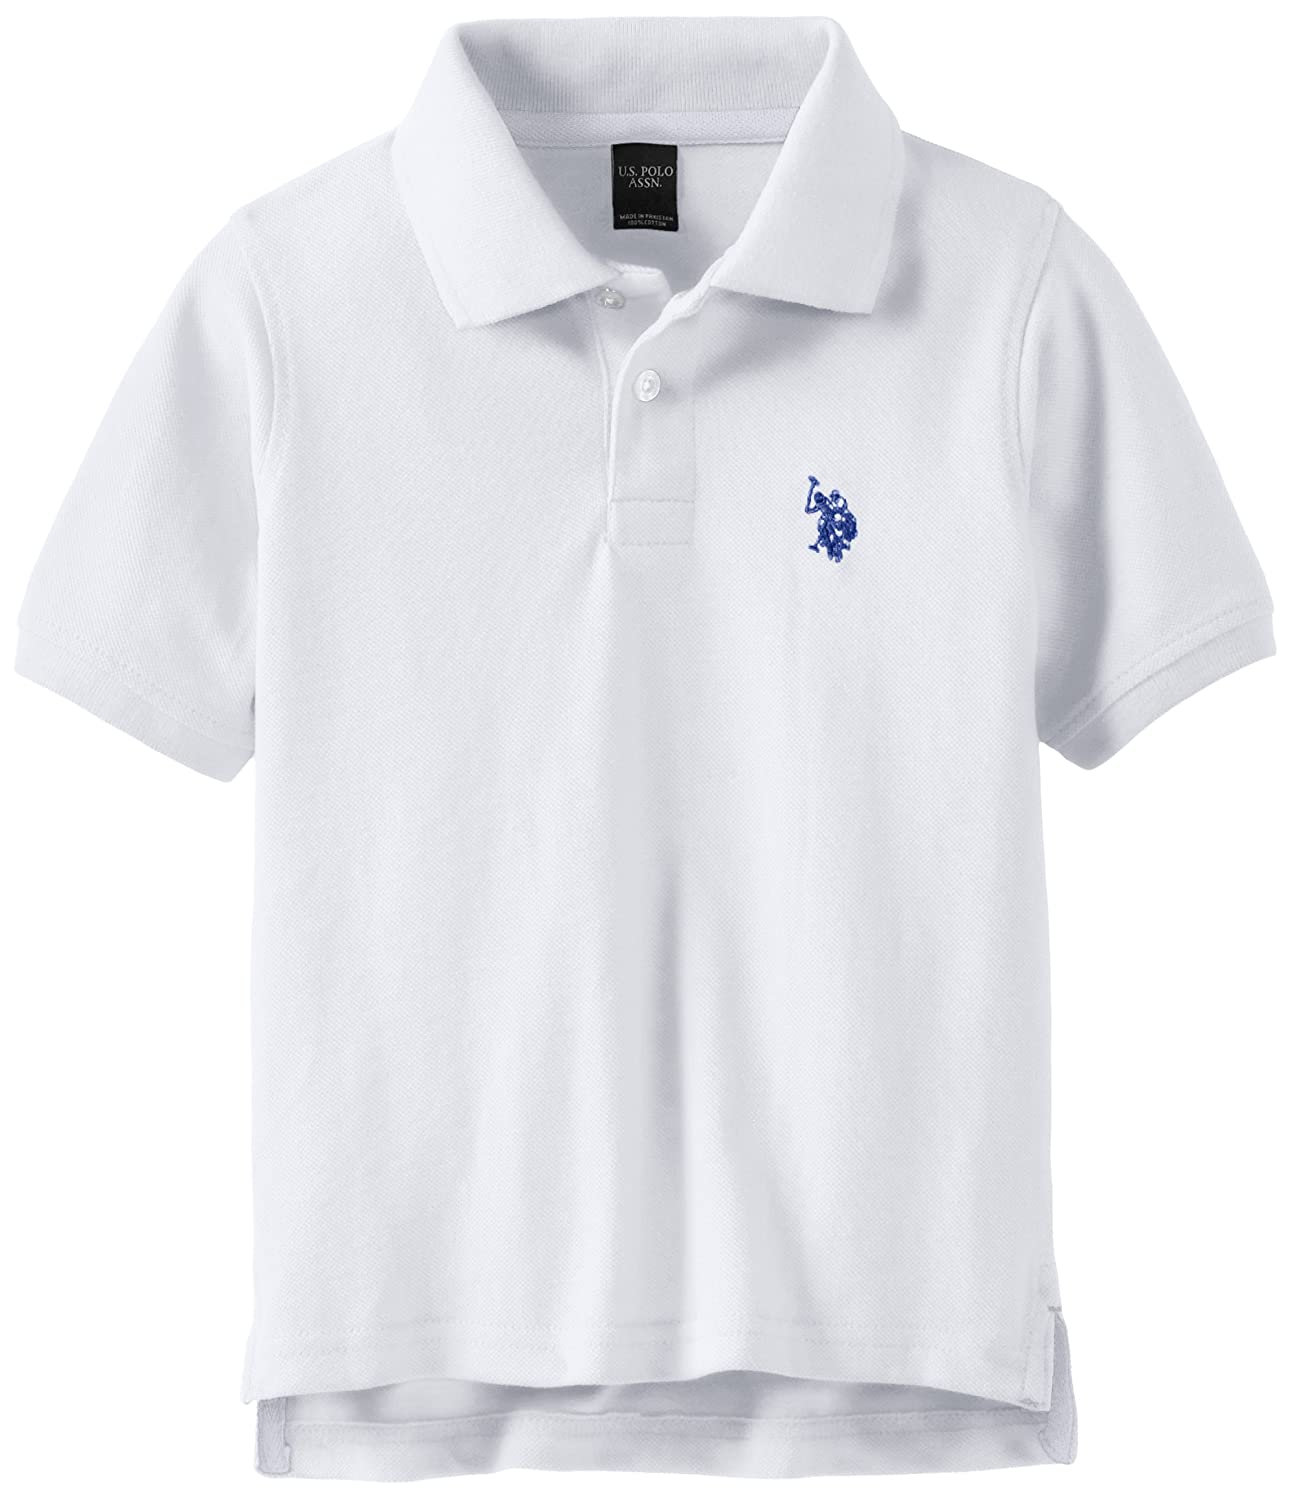 U.S. Polo Assn. Boys' Classic Polo Shirt IC19